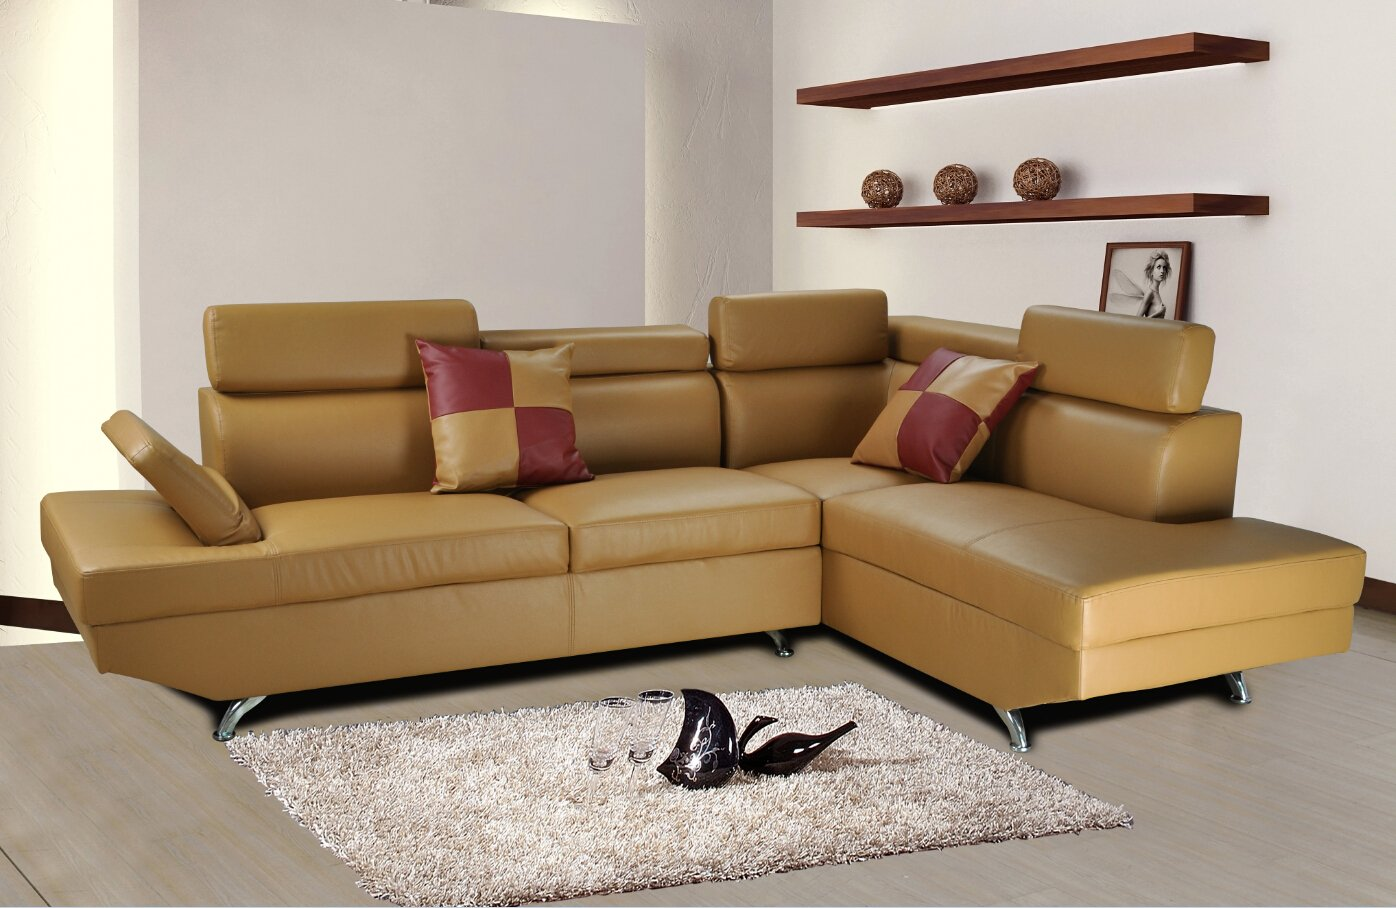 sofa larger view click furniture room dimension zoom with tables over to living media image leather zuri center beverly grey mouse light or